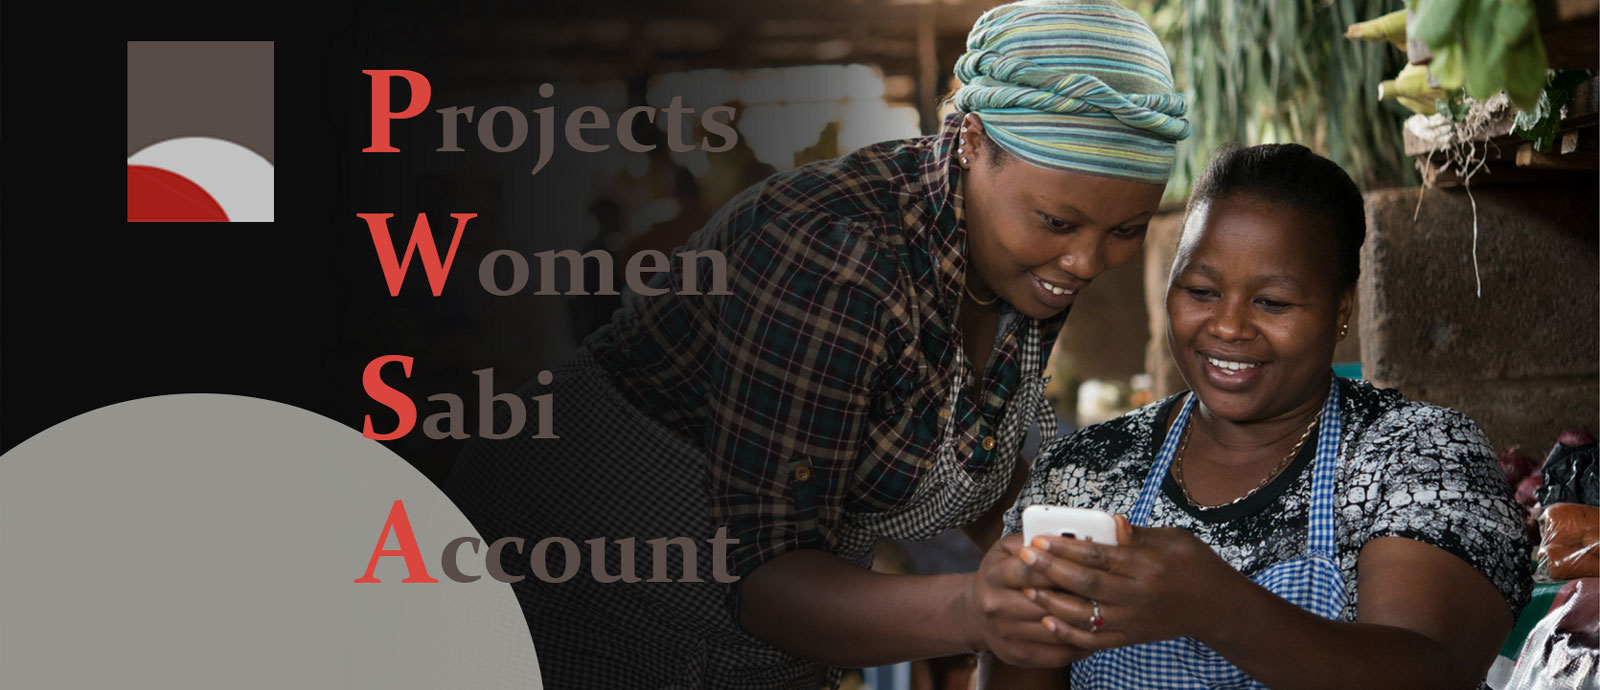 Projects Women Sabi Account (PWOSA)